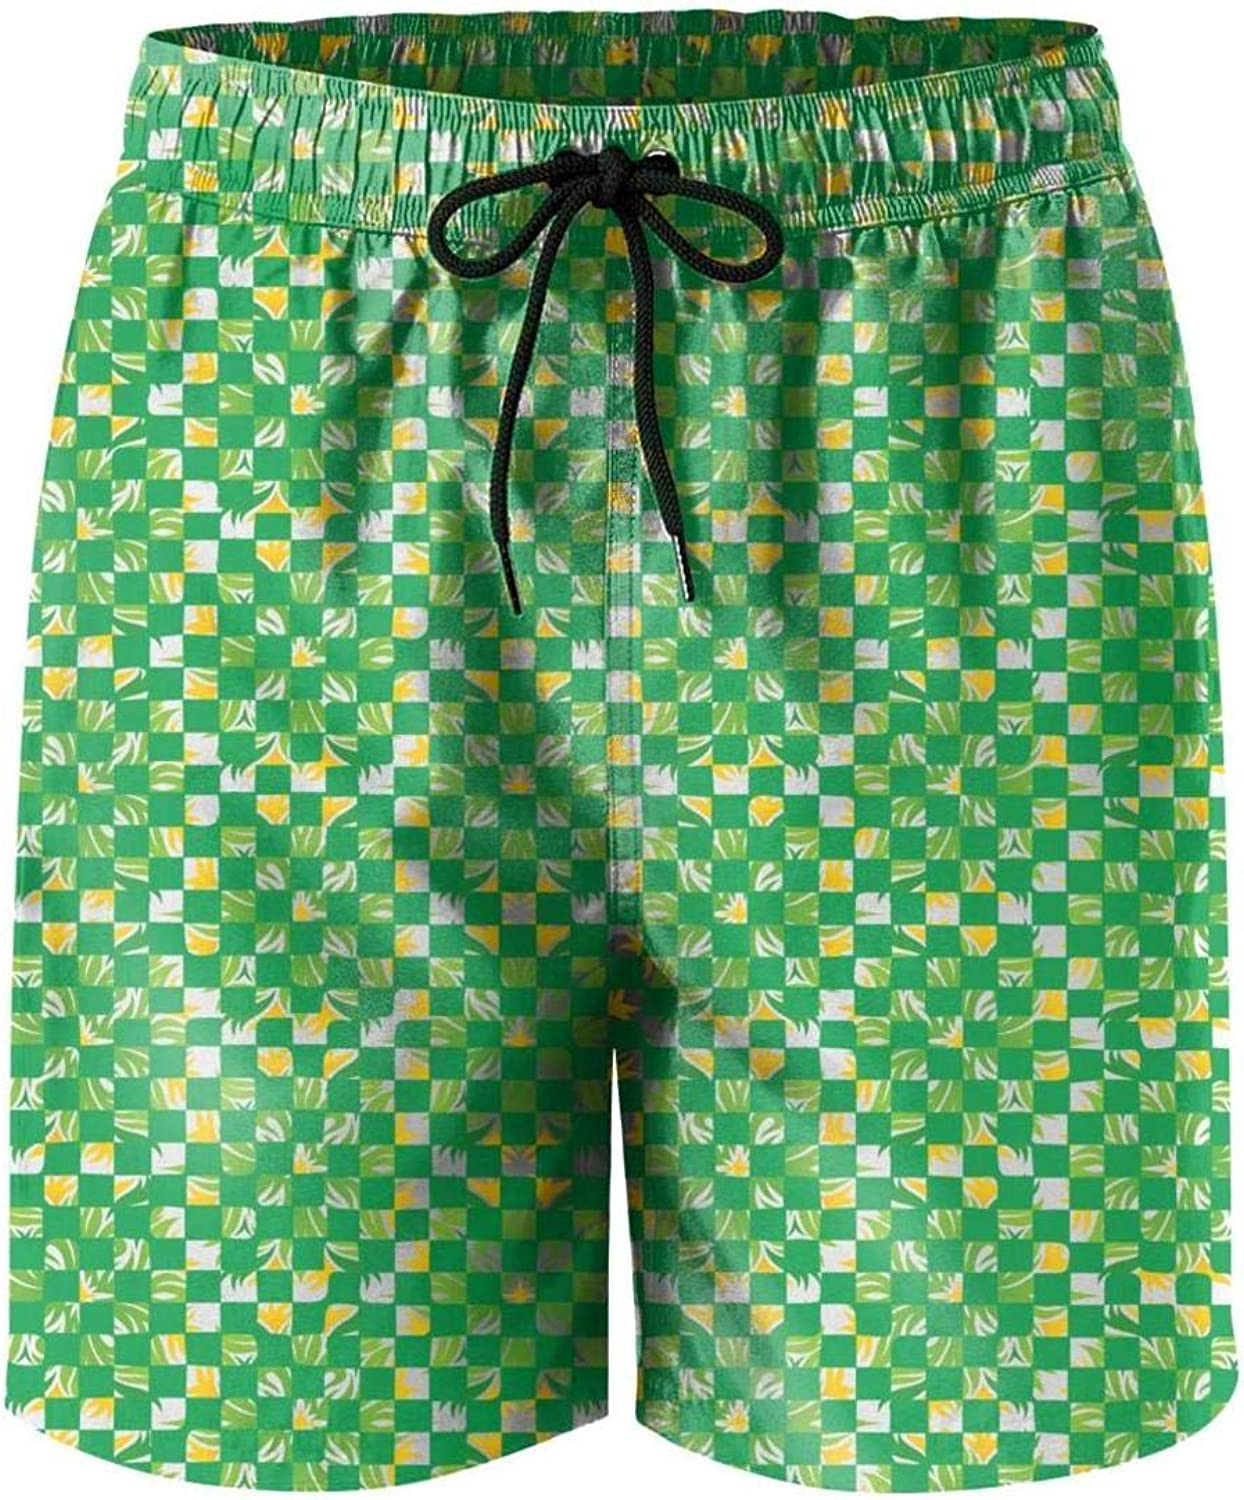 camo Adult Swimming Trunks Sport Casual DSFASDXFX Palnt-Green-Checkered